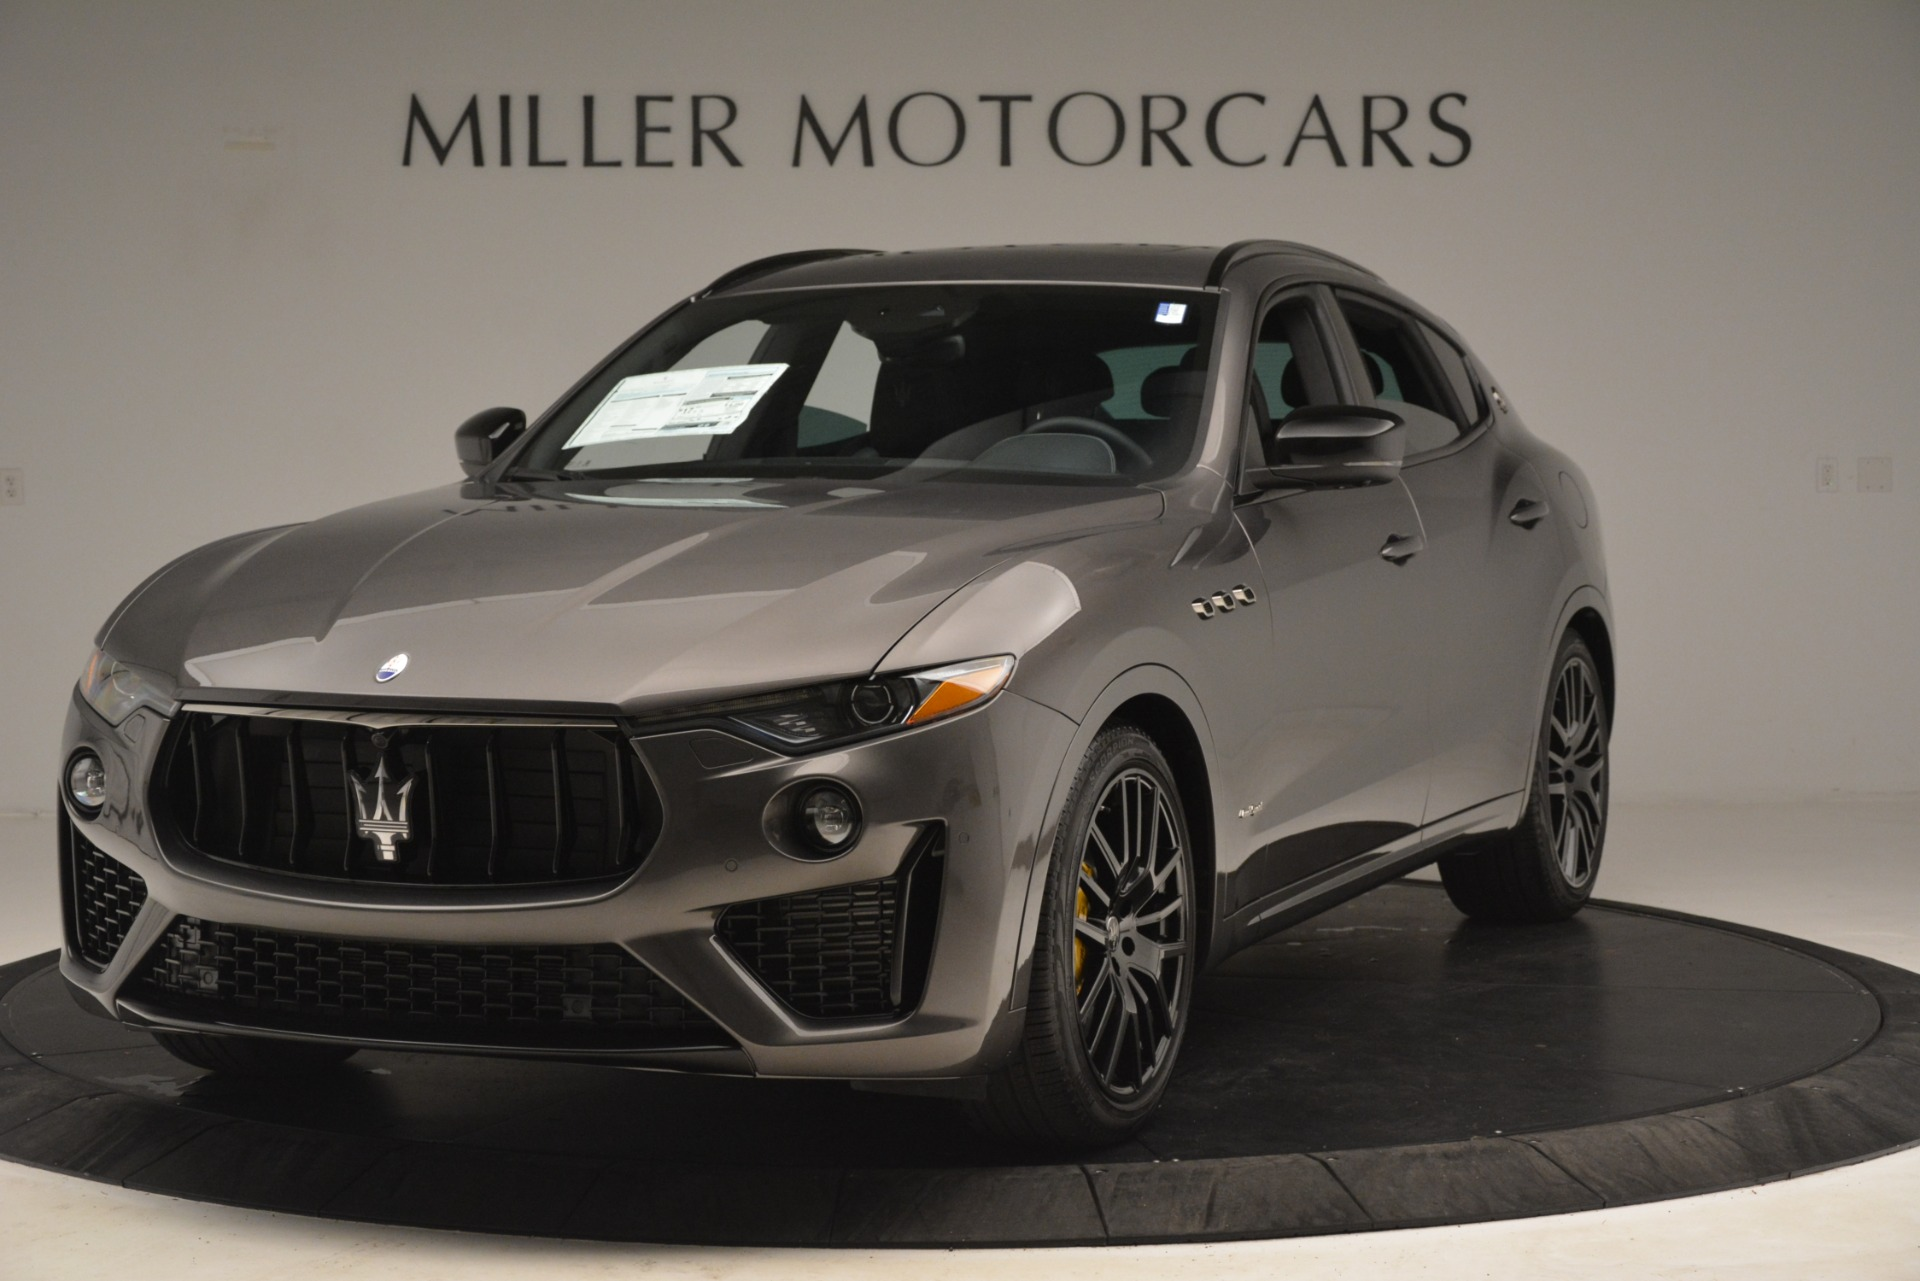 New 2019 Maserati Levante SQ4 GranSport Nerissimo For Sale 105140 In Greenwich, CT